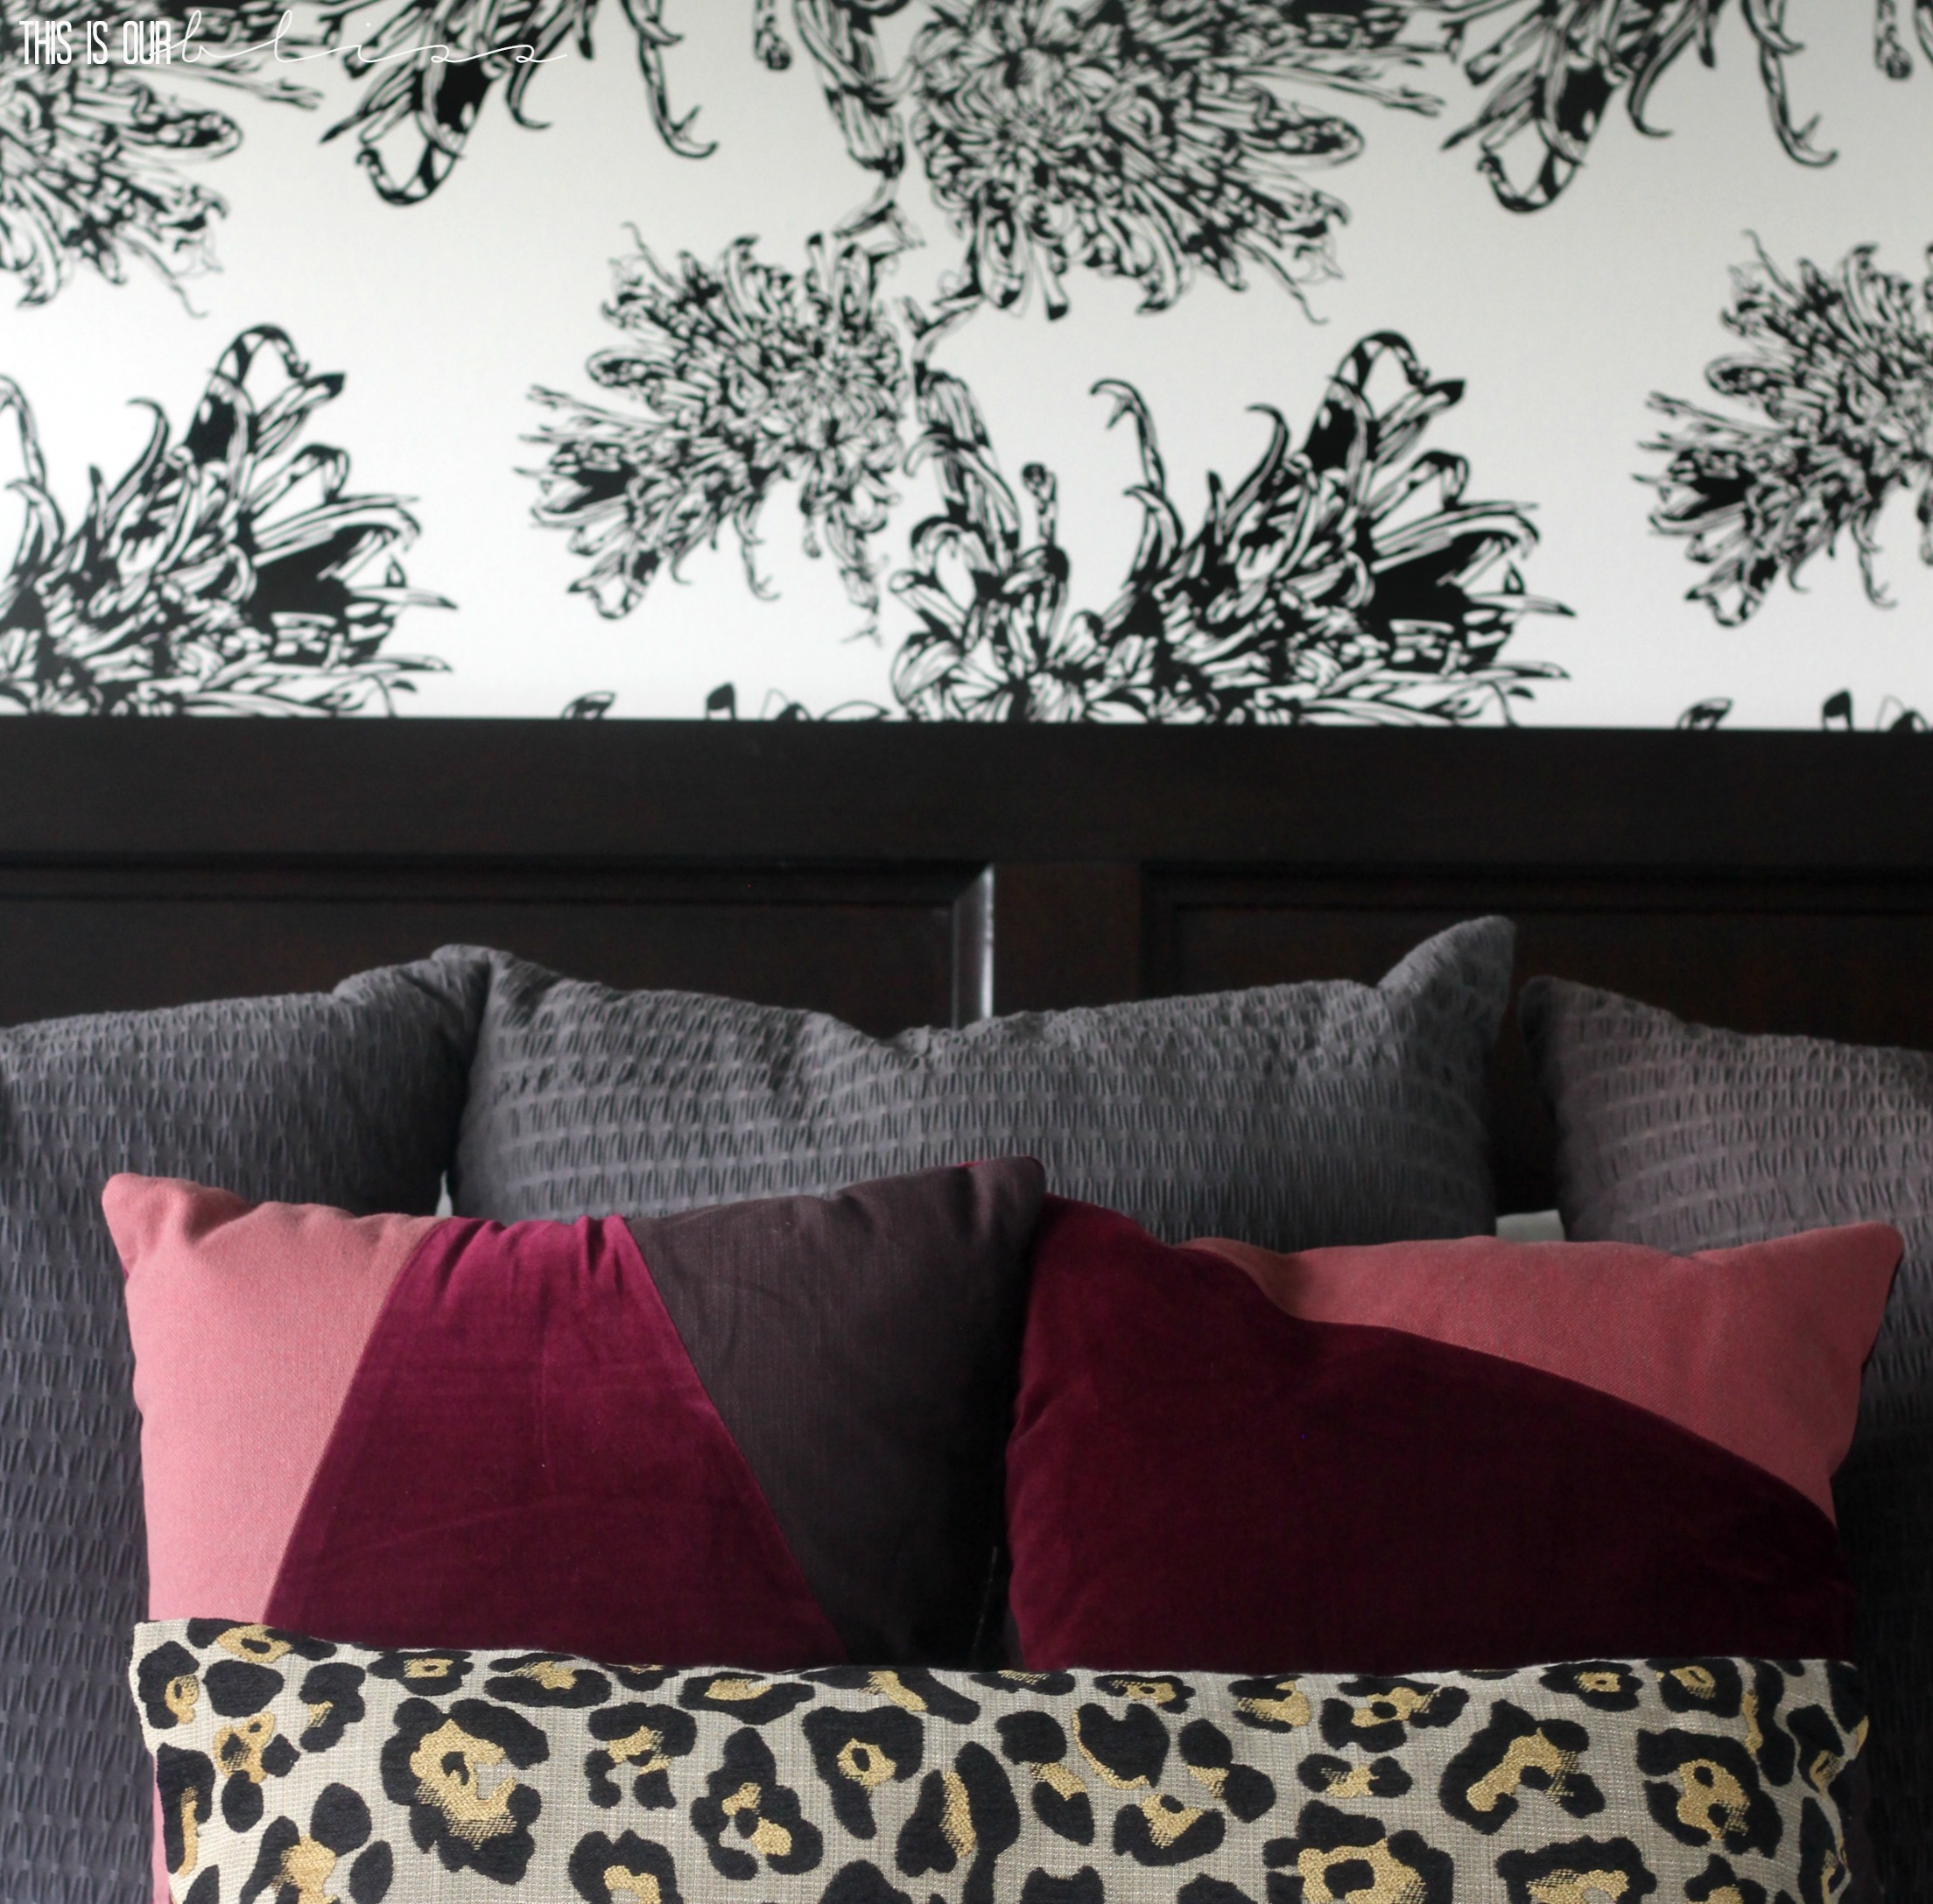 Master Bedroom Wallpaper Accent Wall: Bold Graphic Glam Fall Home Tour 2016: This Is Our Bliss